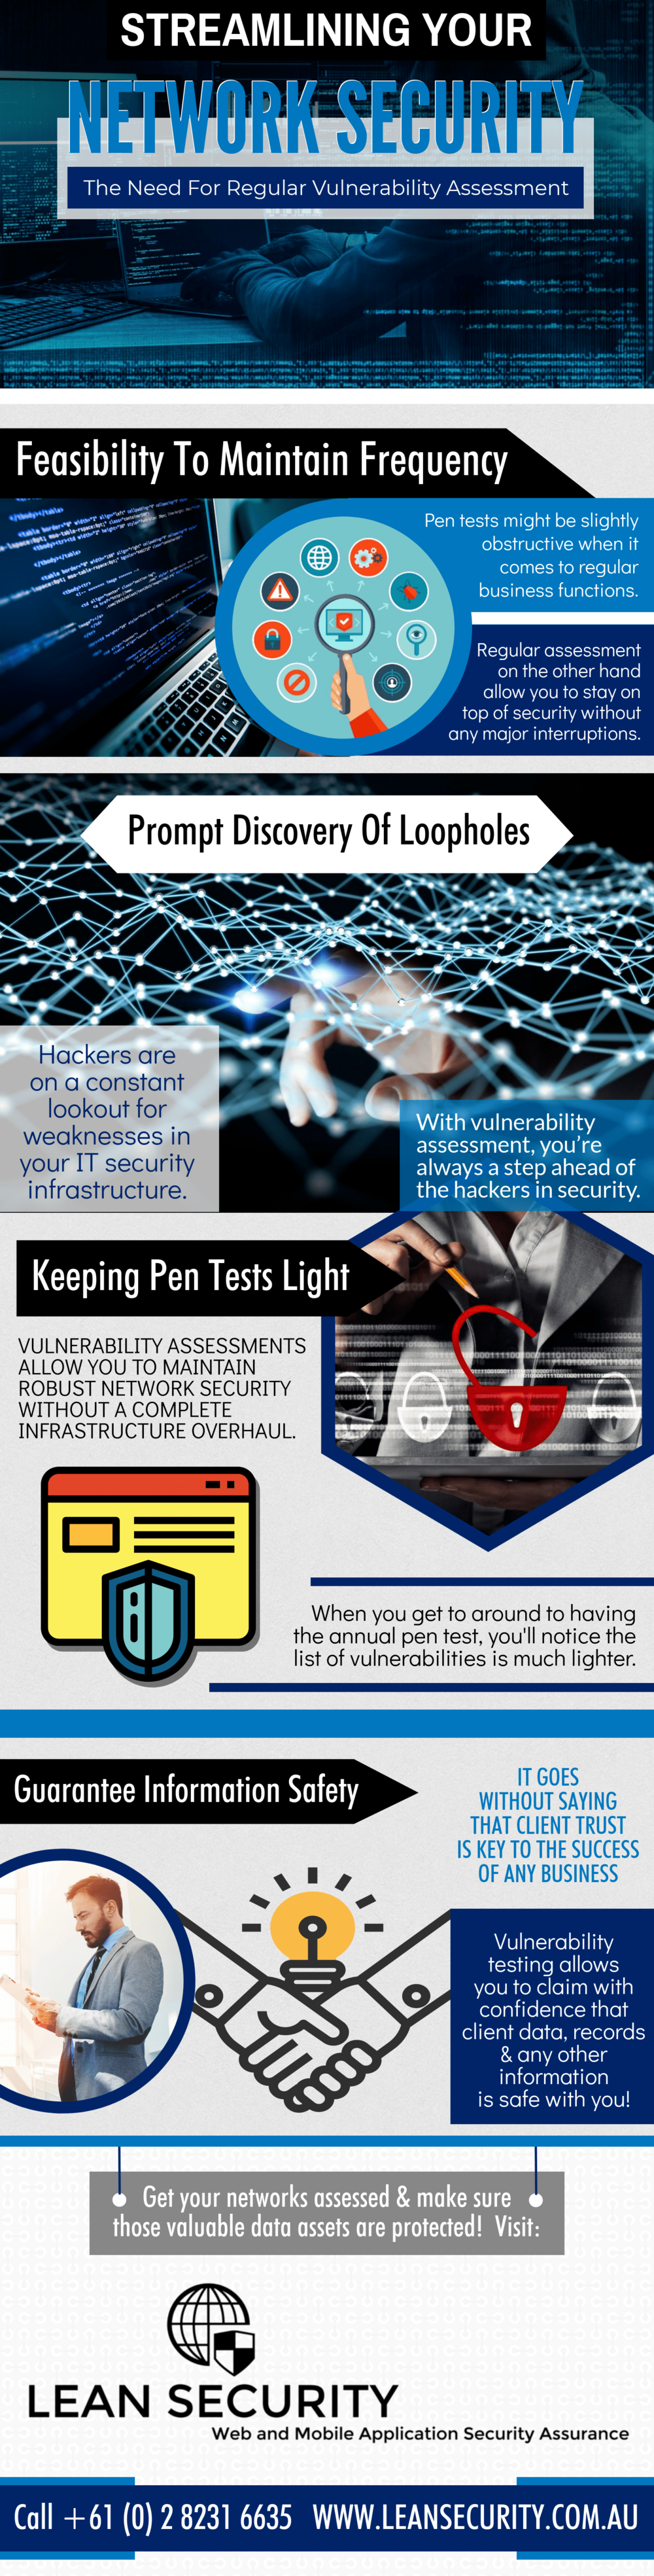 Streamlining Your Netwrok Security - The Need For Regular Vulnerability Assessment.png